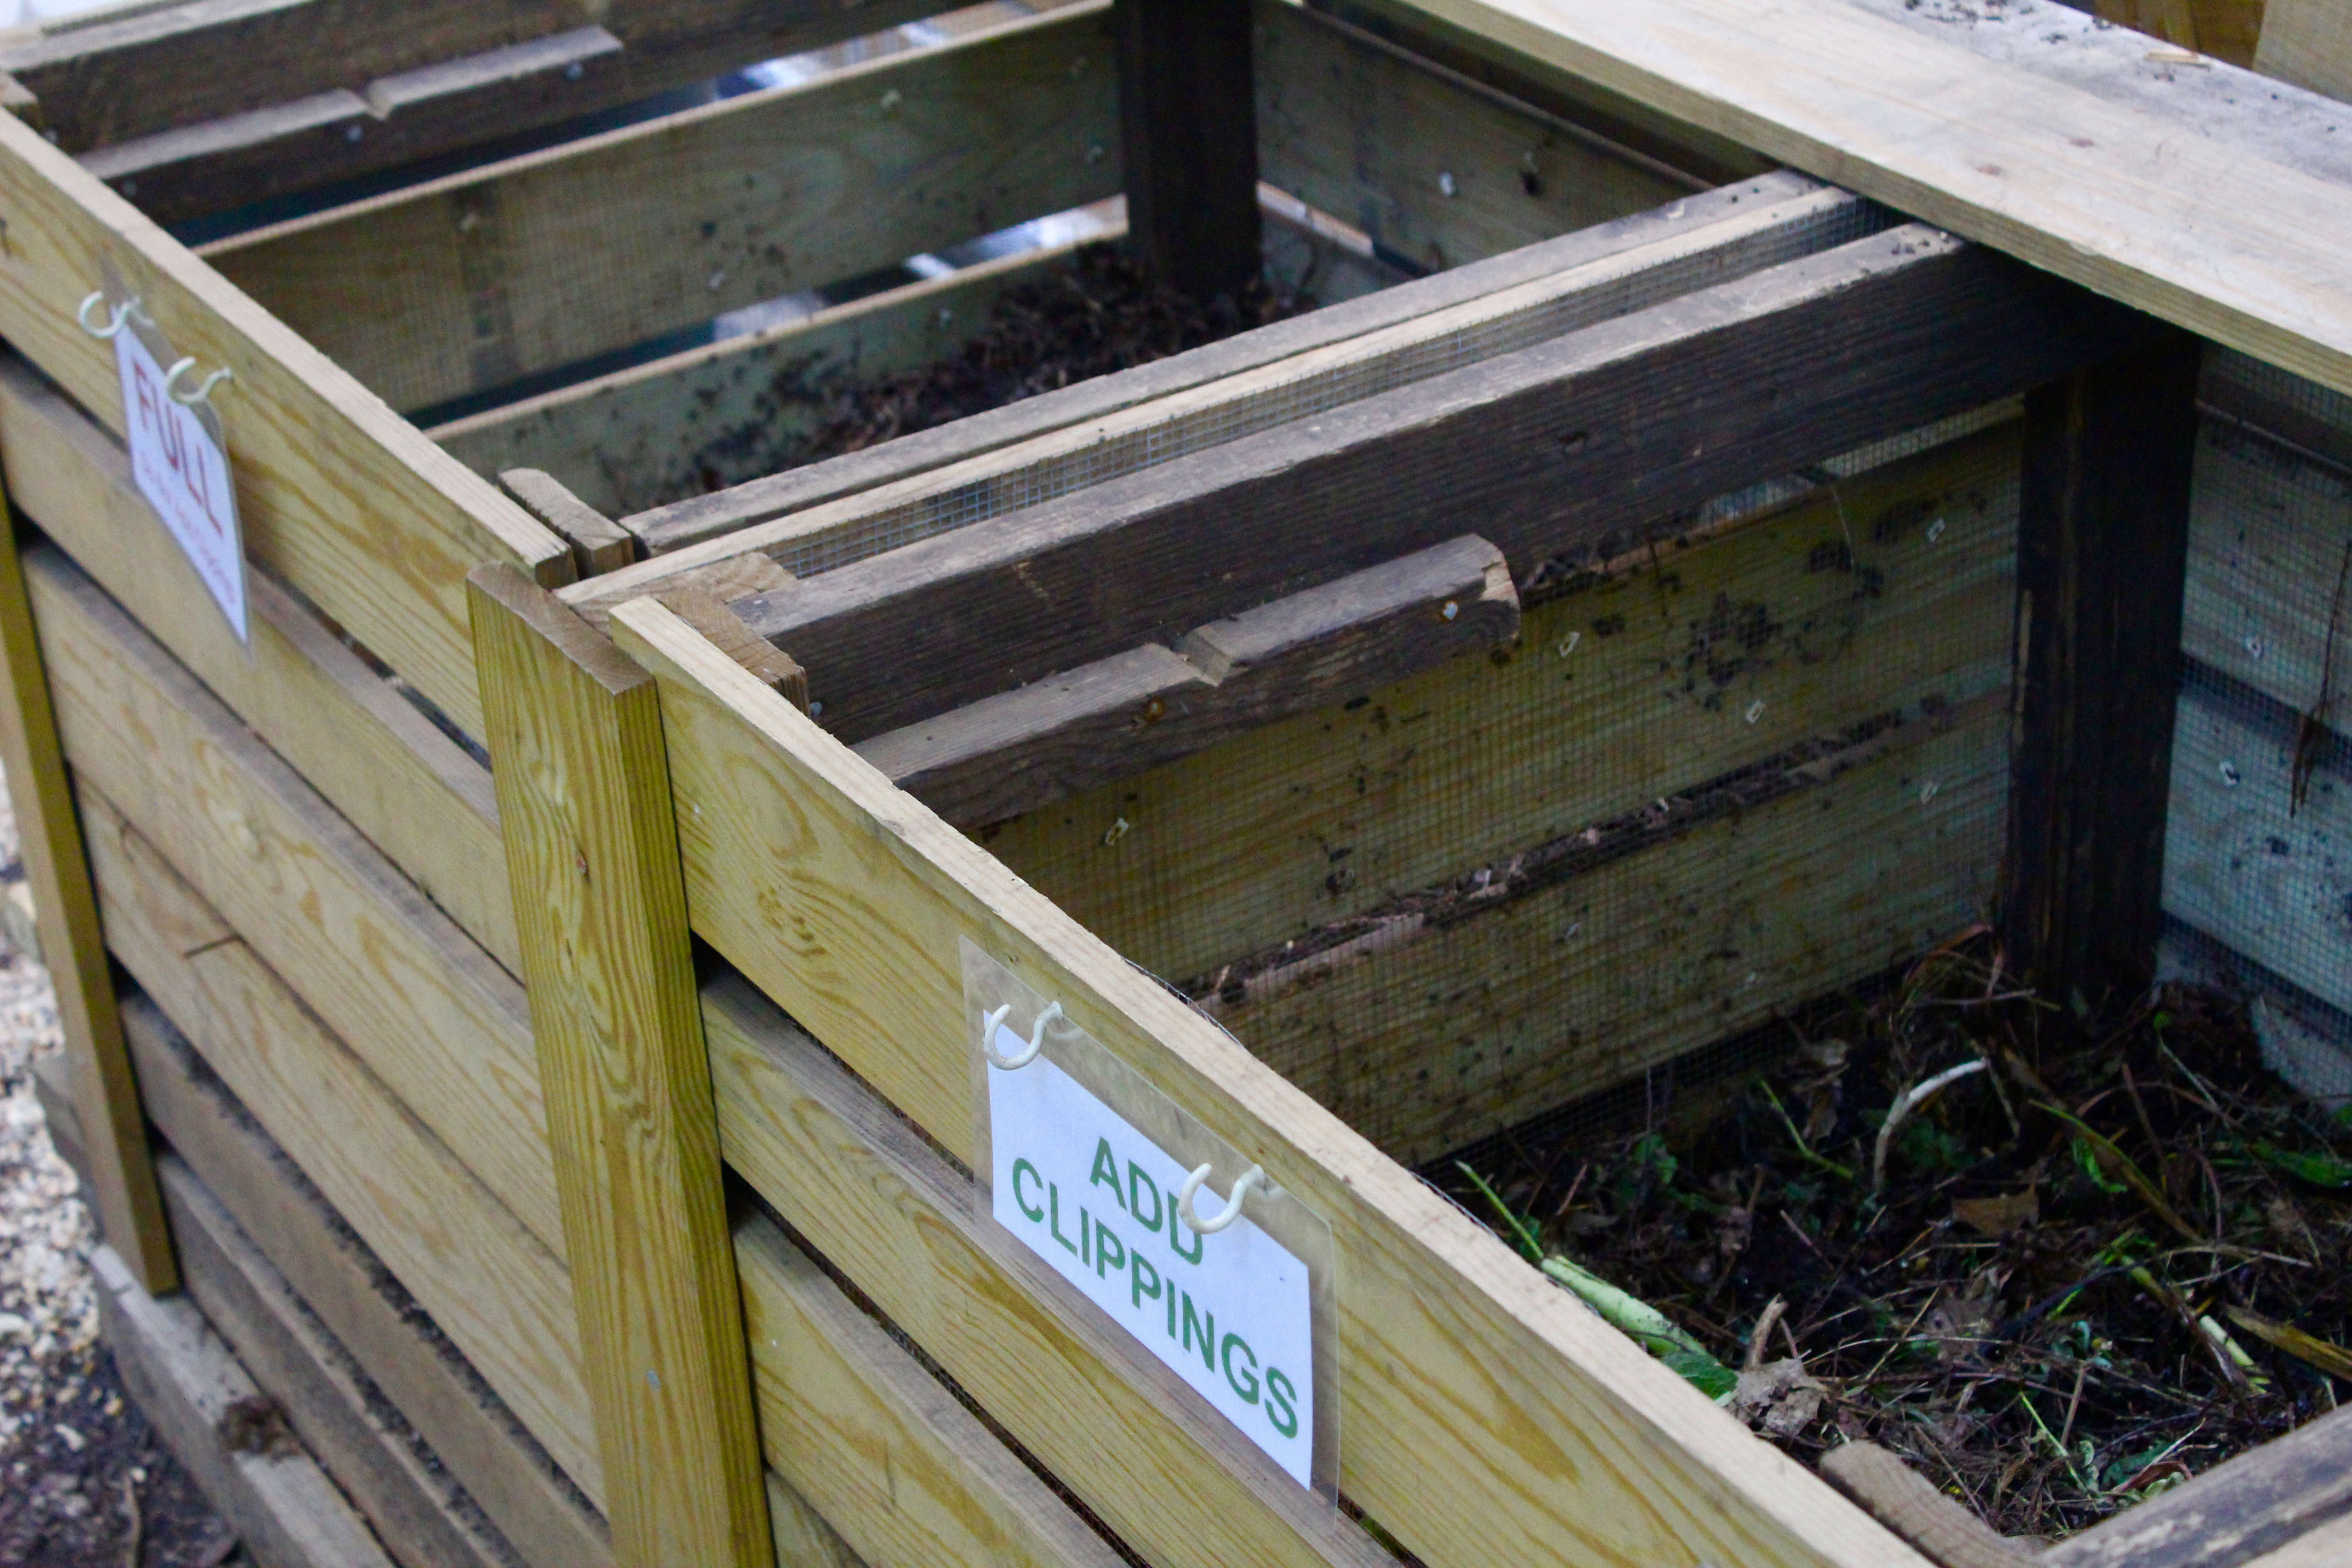 Plot holders are responsible for cutting up plant debris from their gardens before adding it to the compost. After that, a single person manages the bins to ensure clippings stay moist and aerated.